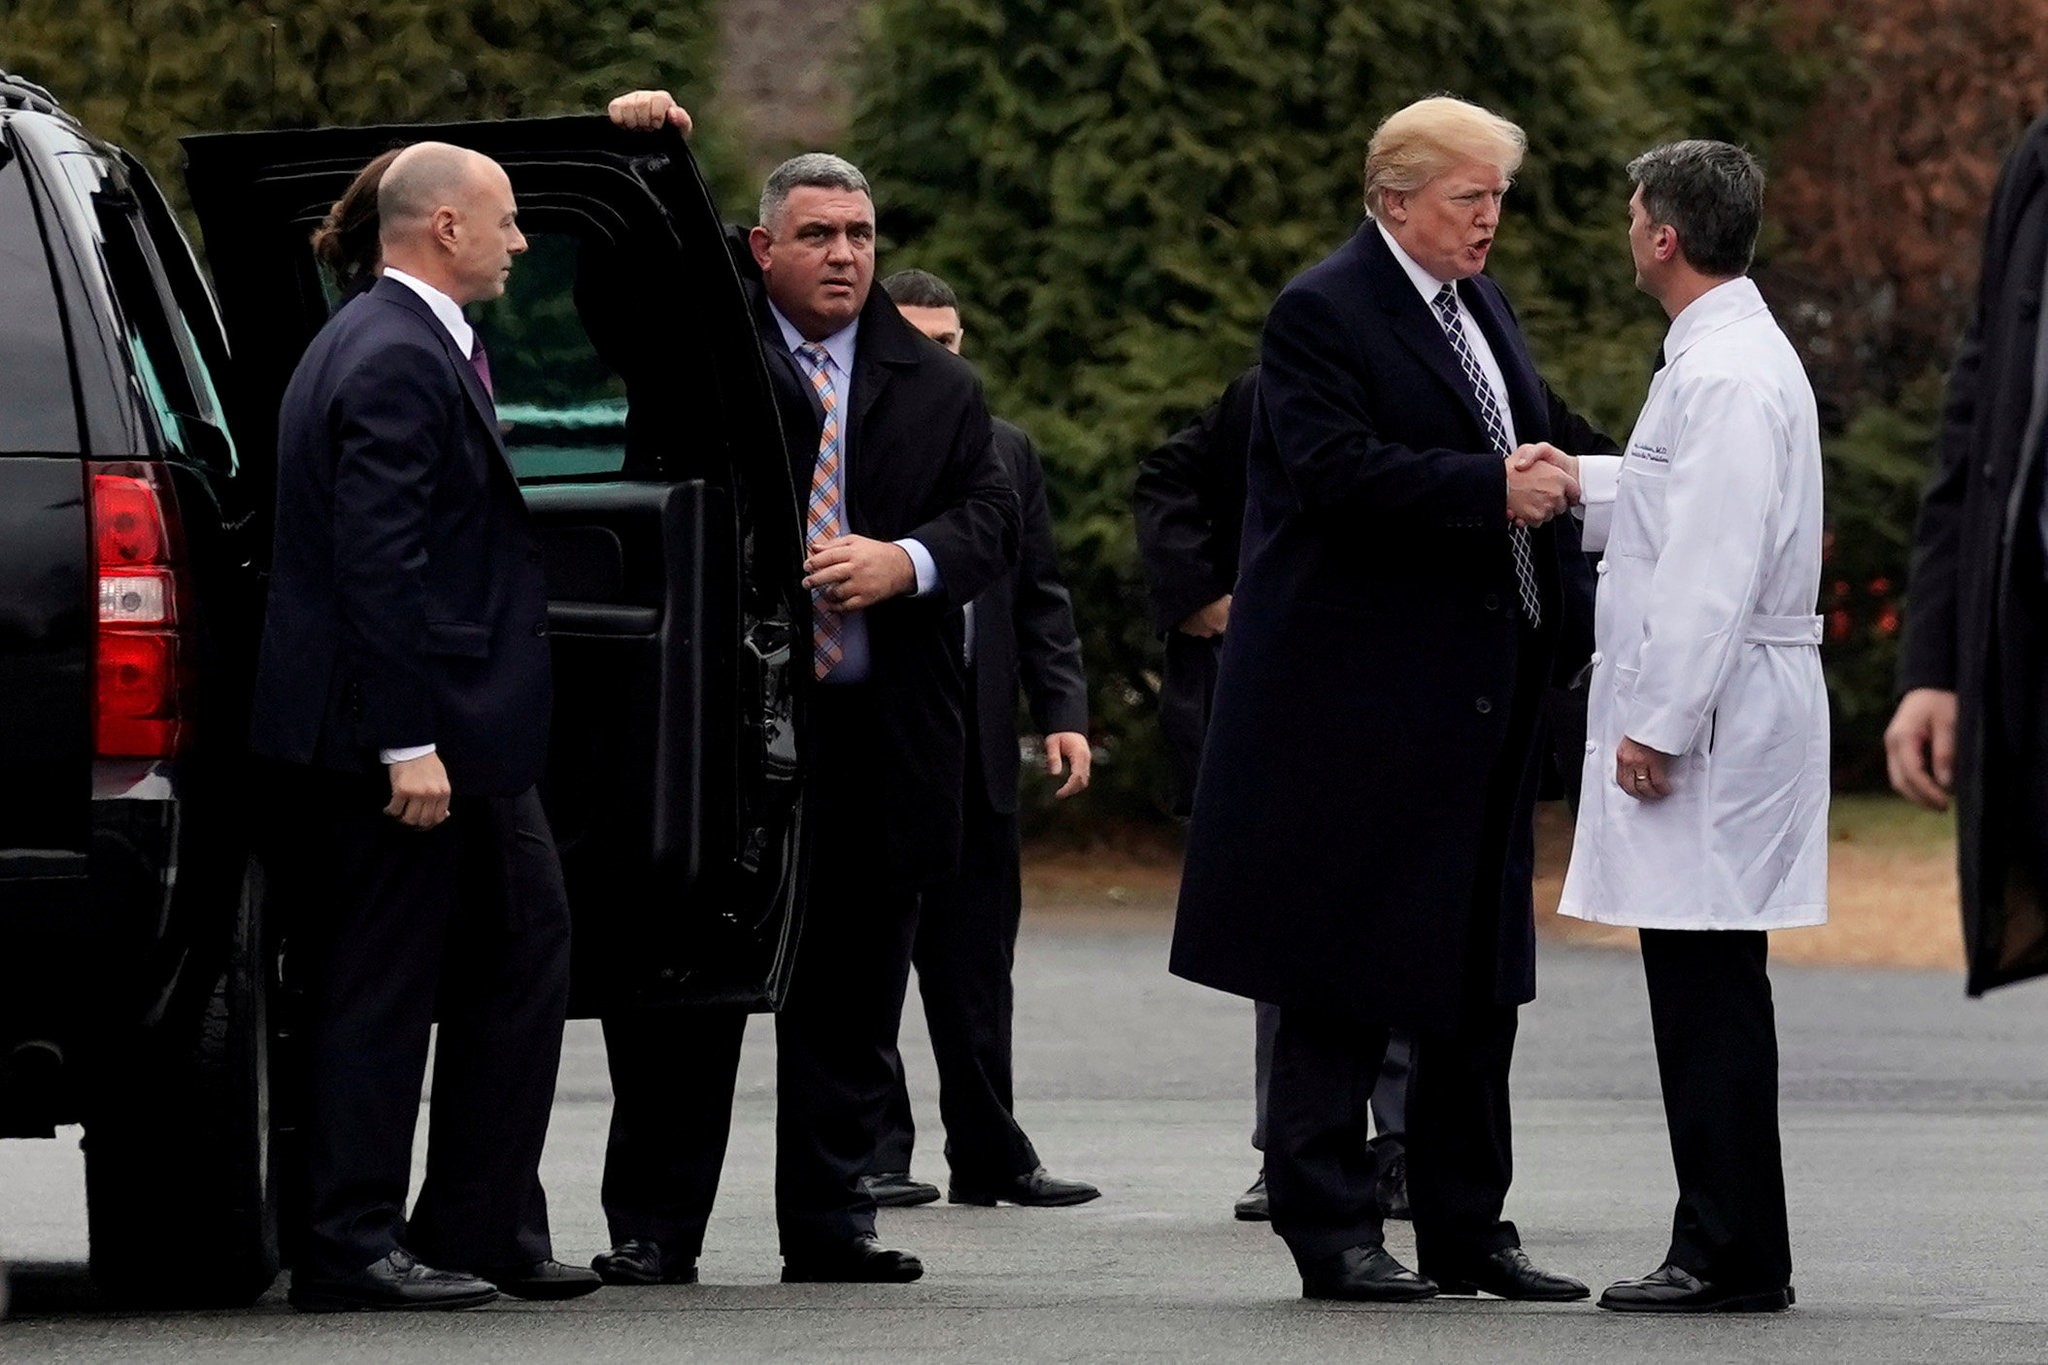 U.S. President Donald Trump shakes hands with Dr. Ronny Jackson after his annual physical exam at Walter Reed National Military Medical Center in Bethesda,  Maryland, U.S., January 12, 2018. (REUTERS Photo)